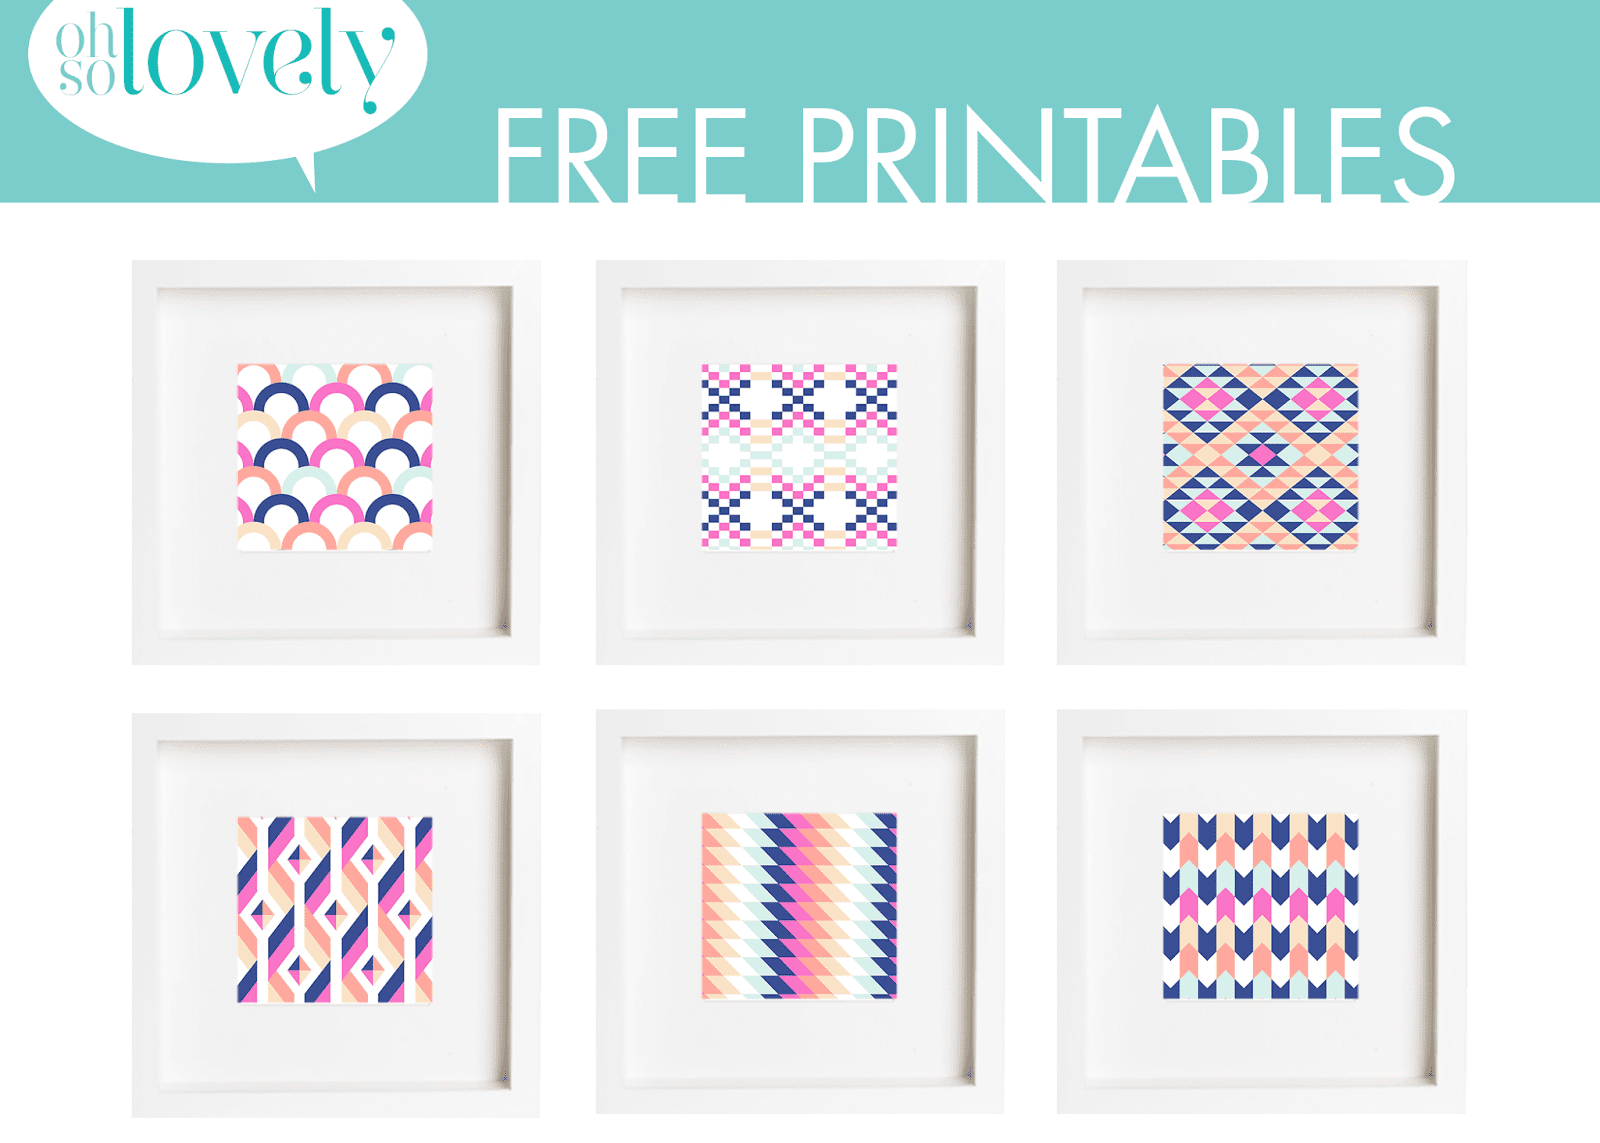 11 Places To Find Free, Printable Wall Art Online - Free Printable Artwork